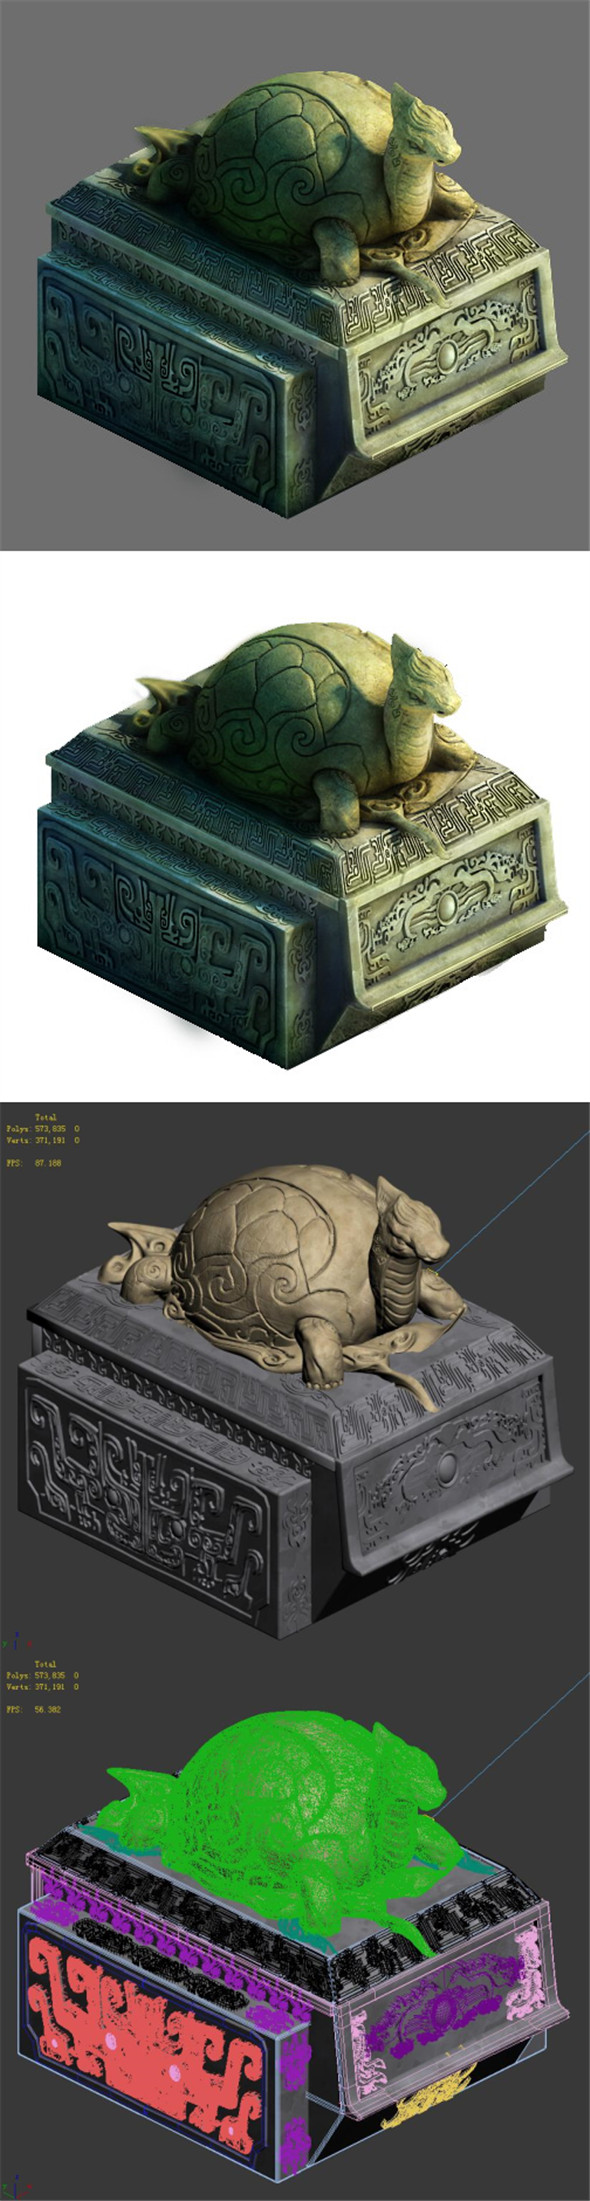 Decorative stone carvings - turtle - 3DOcean Item for Sale